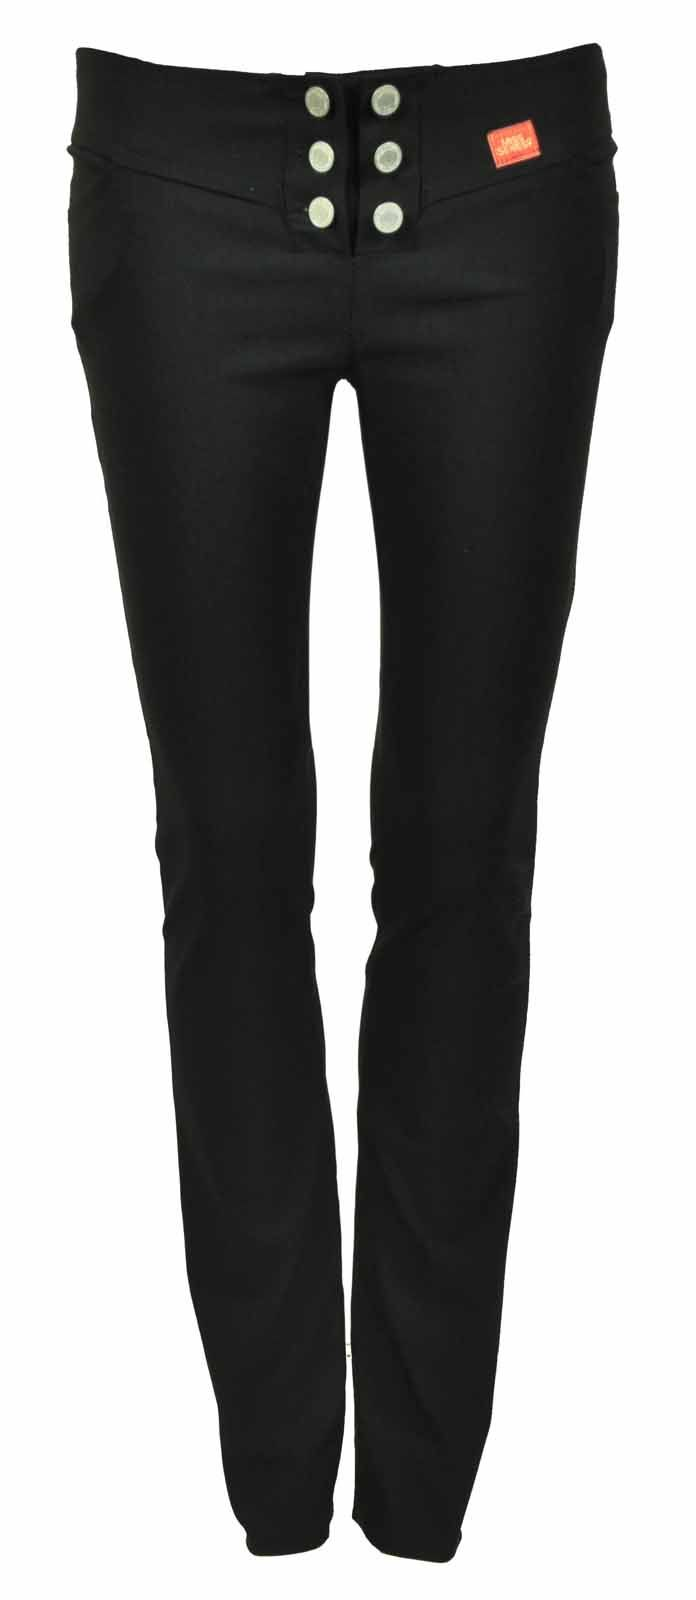 4caf641a645 New womens plain black stretch hipster ladies trousers